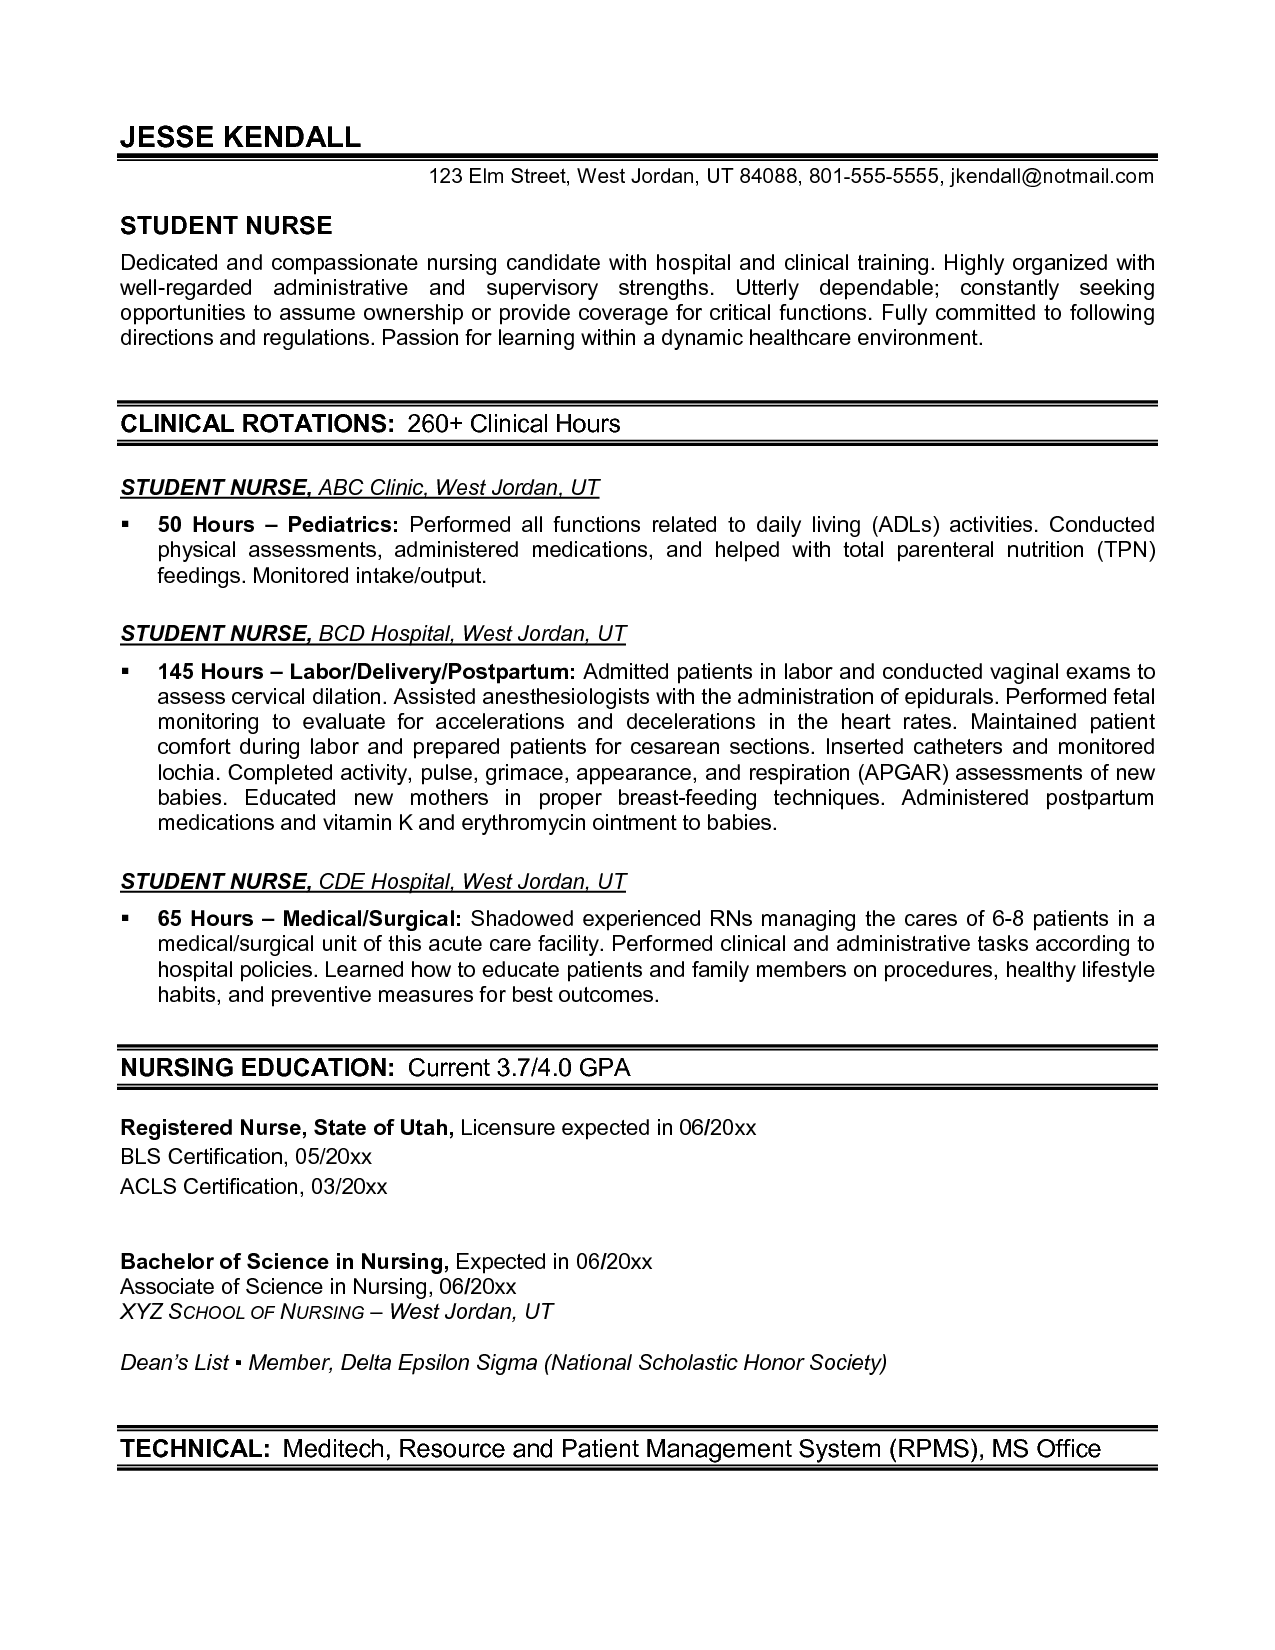 nursing resume template best templateresume templates cover letter examples - Resume Sample For Nurse